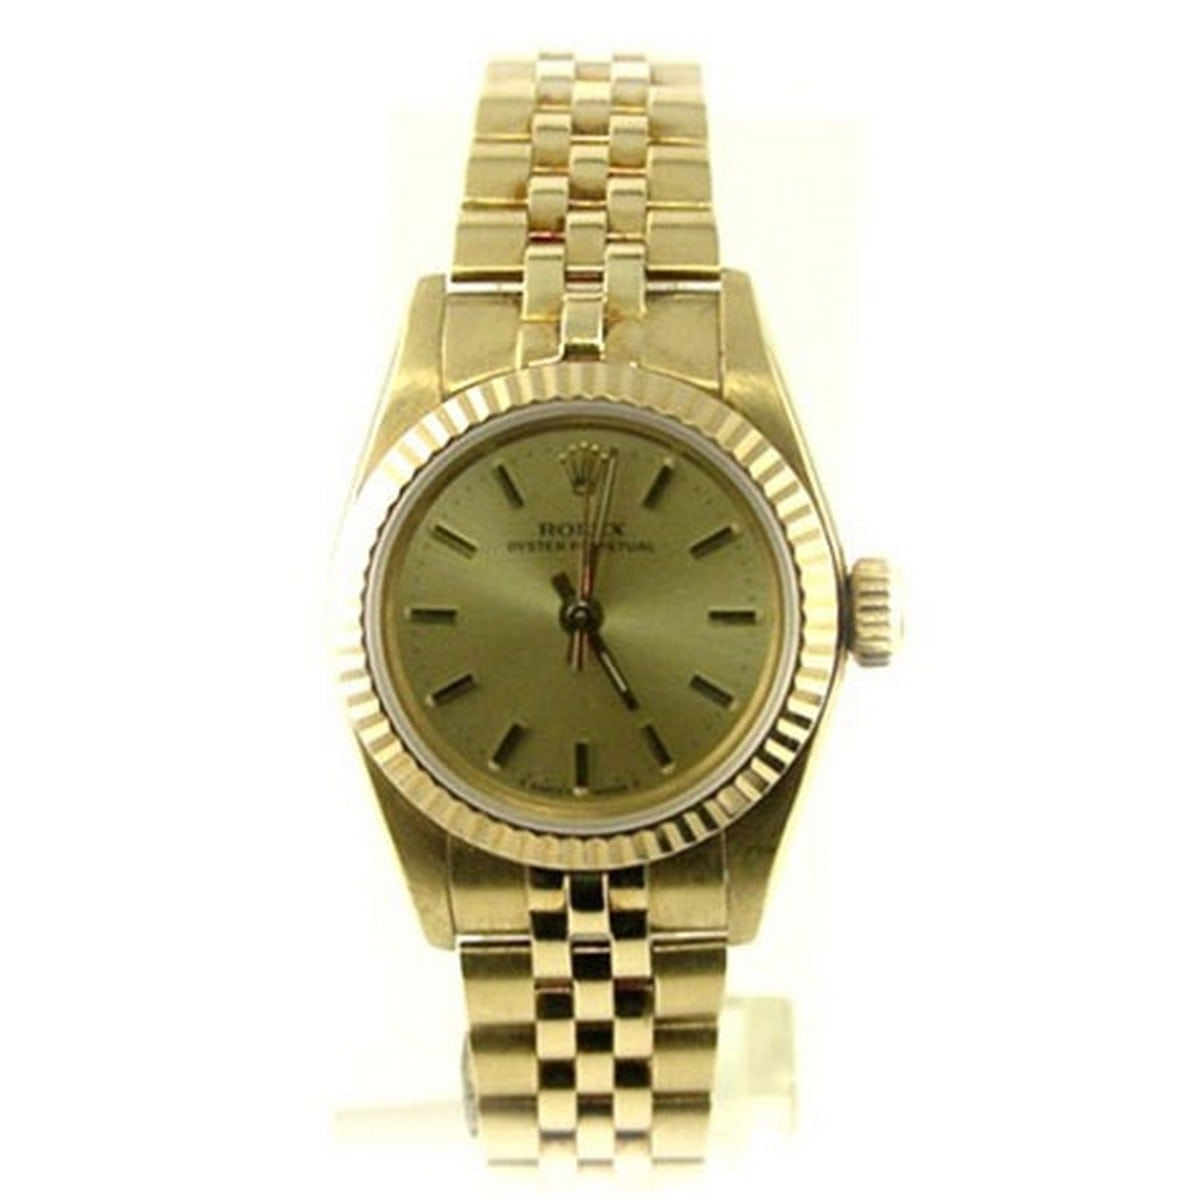 rolex lady oyster perpetual date. Black Bedroom Furniture Sets. Home Design Ideas